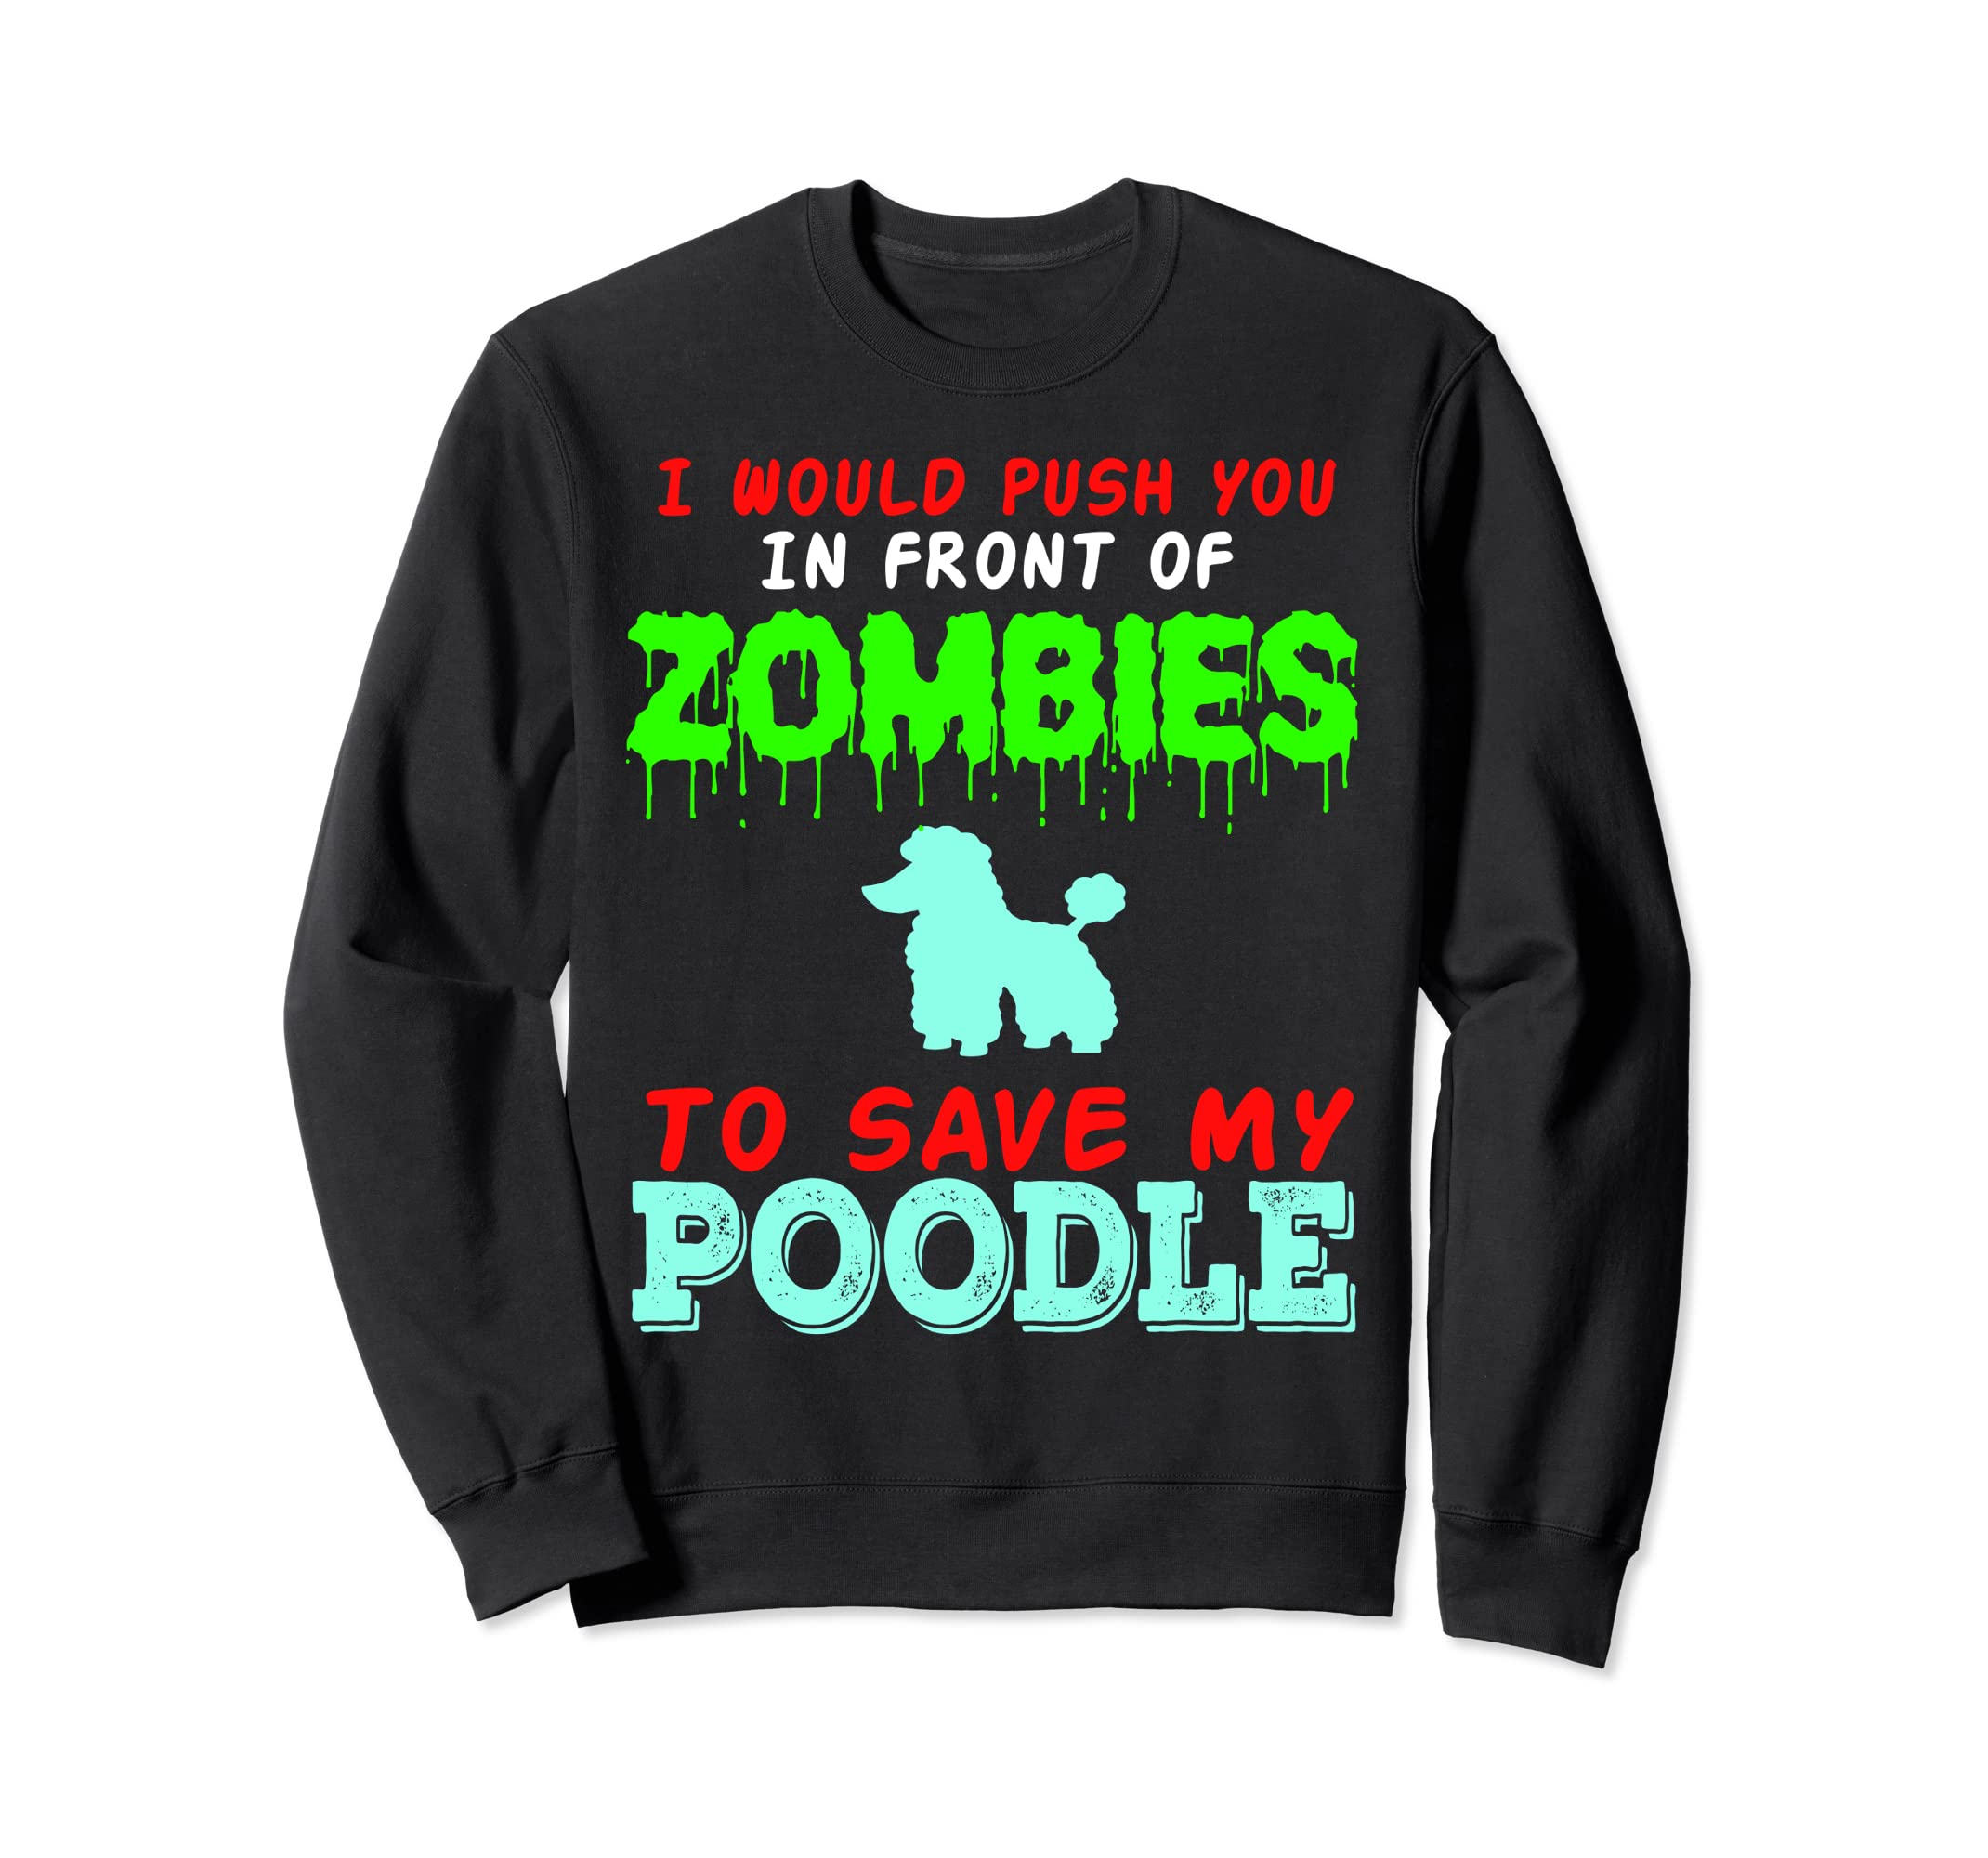 c96440ad7 Amazon.com: Poodle I Would Push You To Zombies domestic Dog Mom Sweater:  Clothing